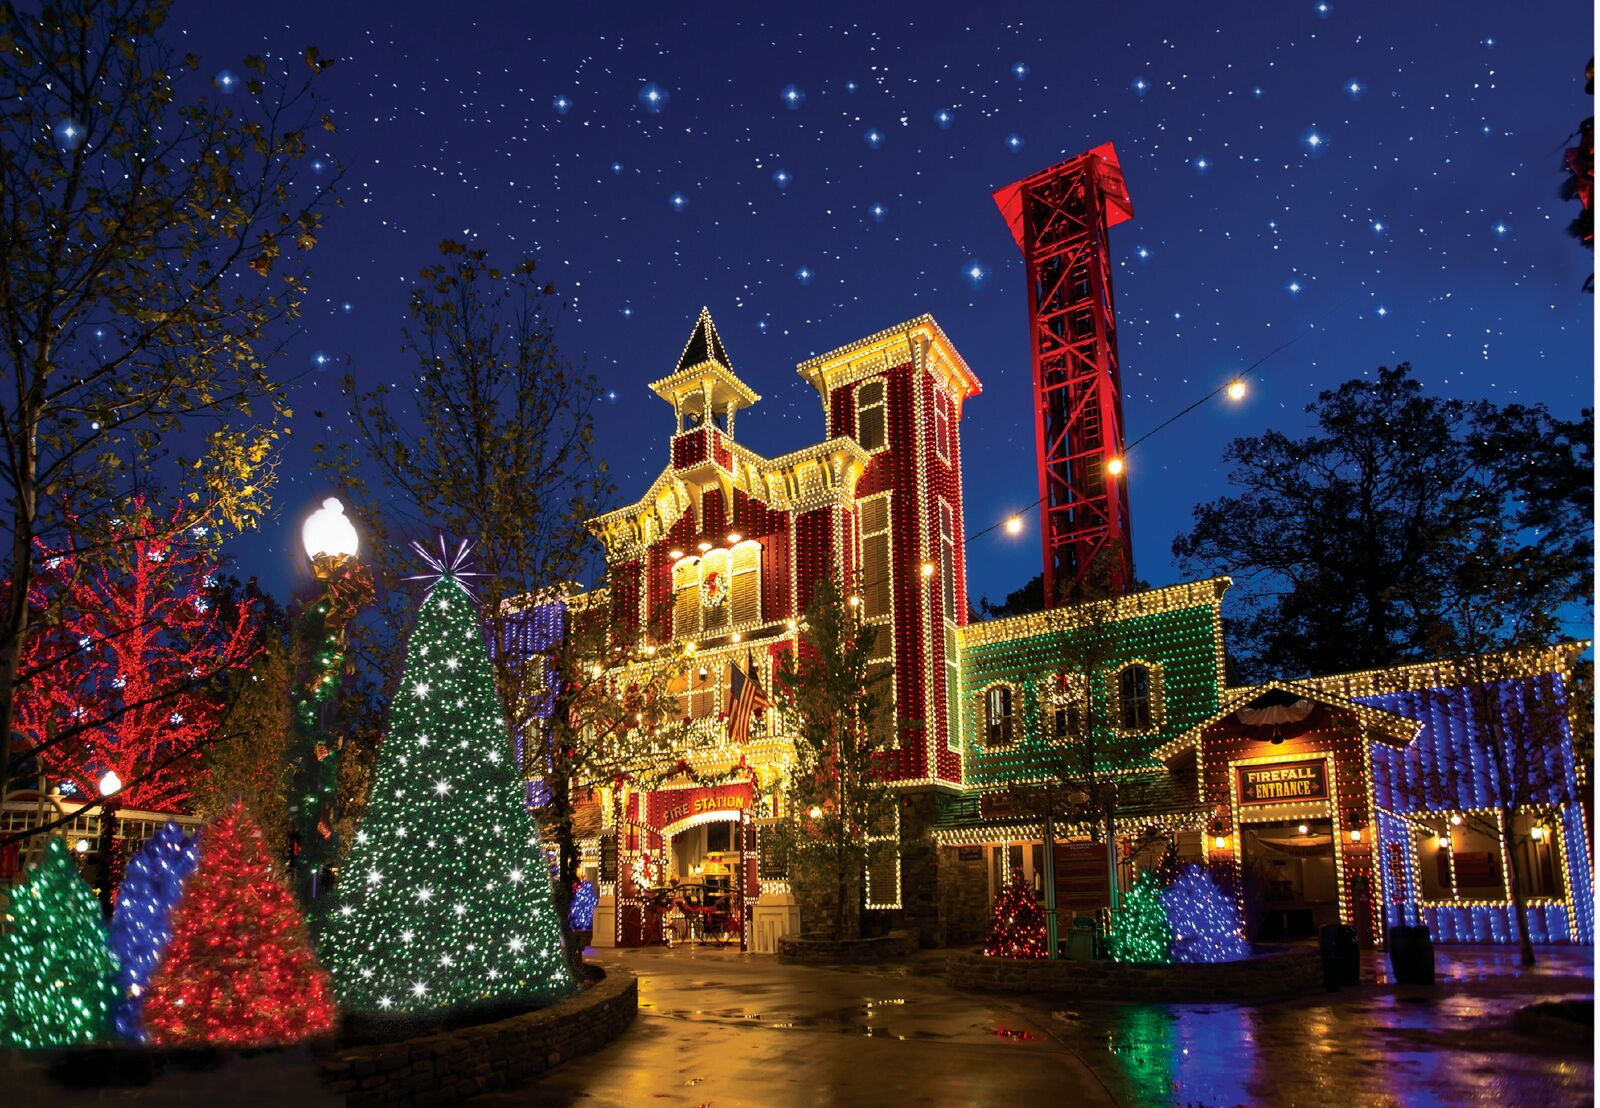 Head to Silver Dollar City for over 6.5 millions lights and 1,000 Christmas trees.